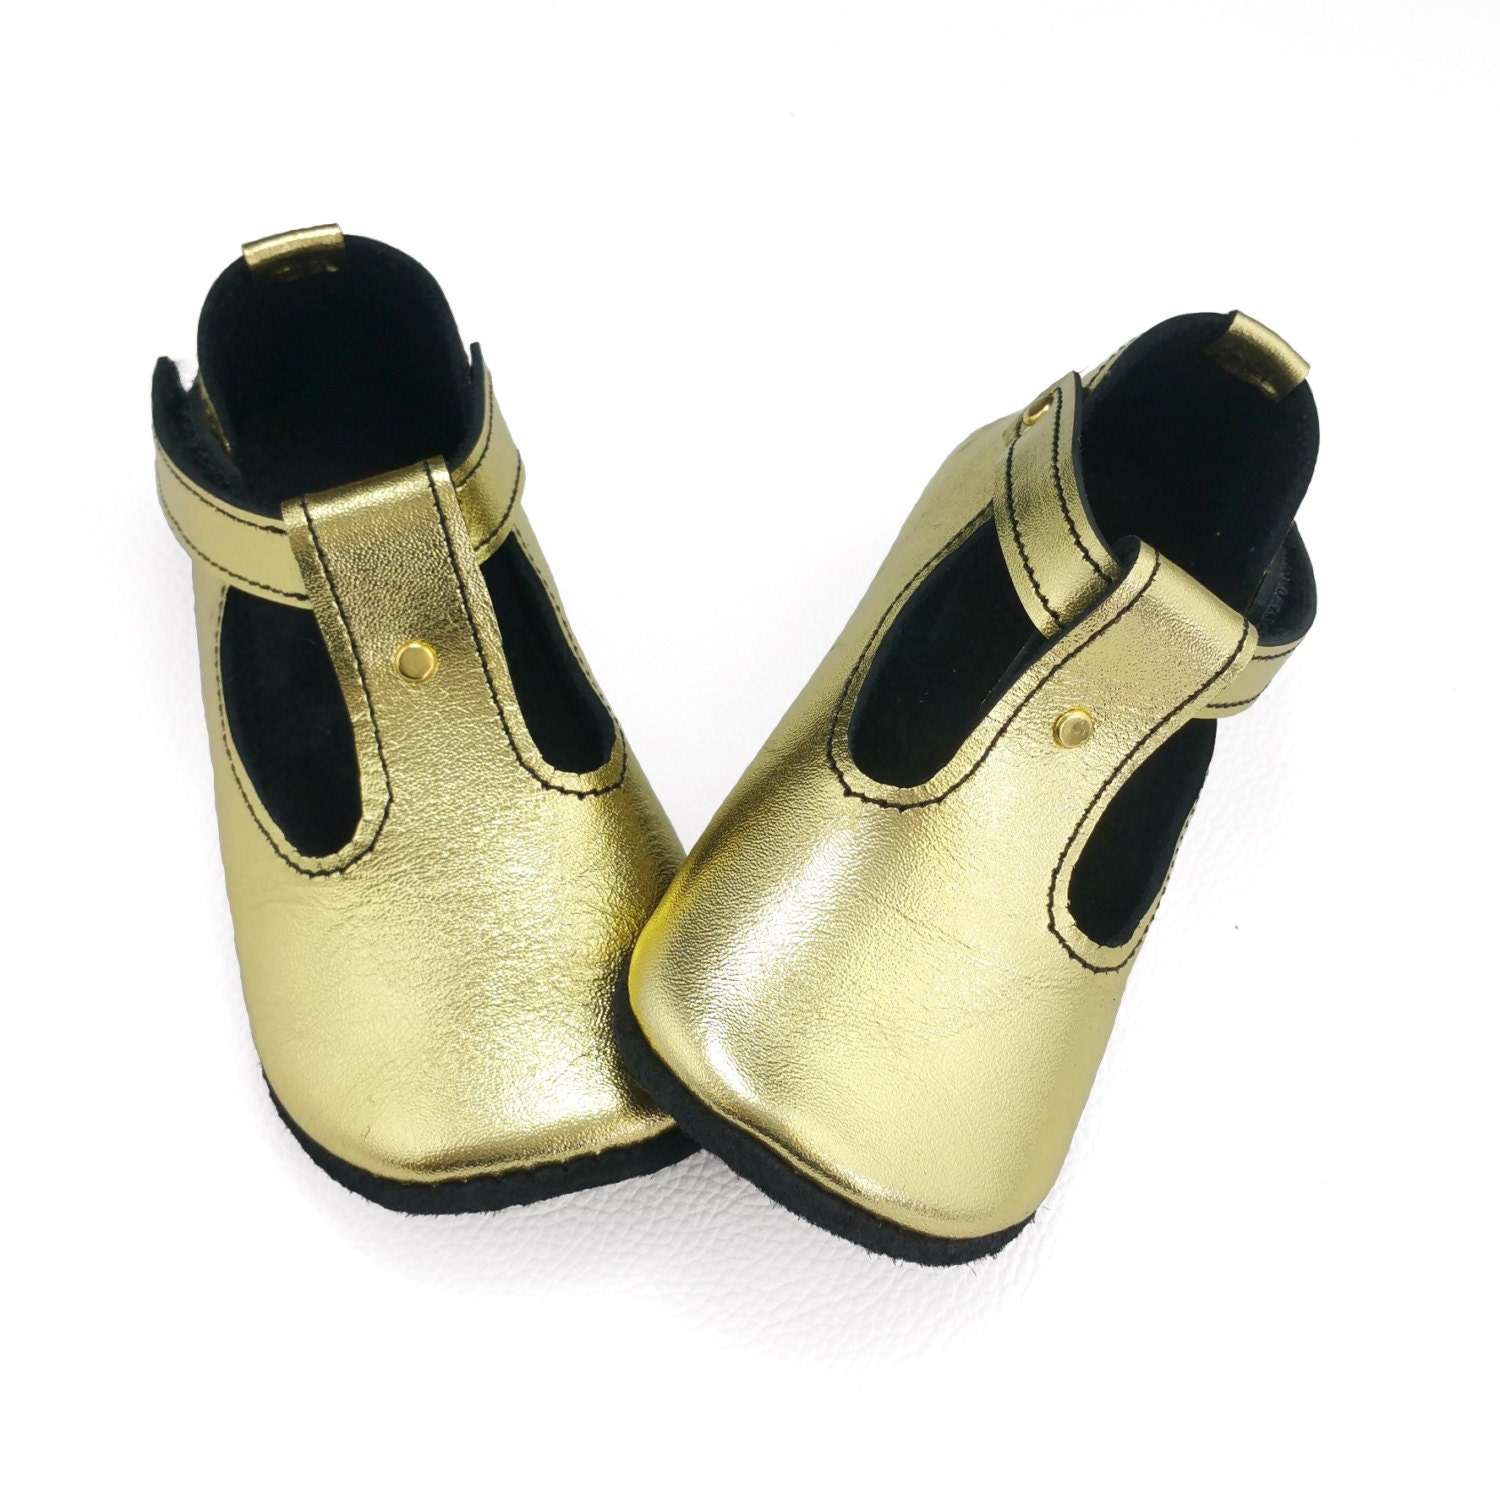 Handmade gold leather baby shoes Gold leather T bar shoes